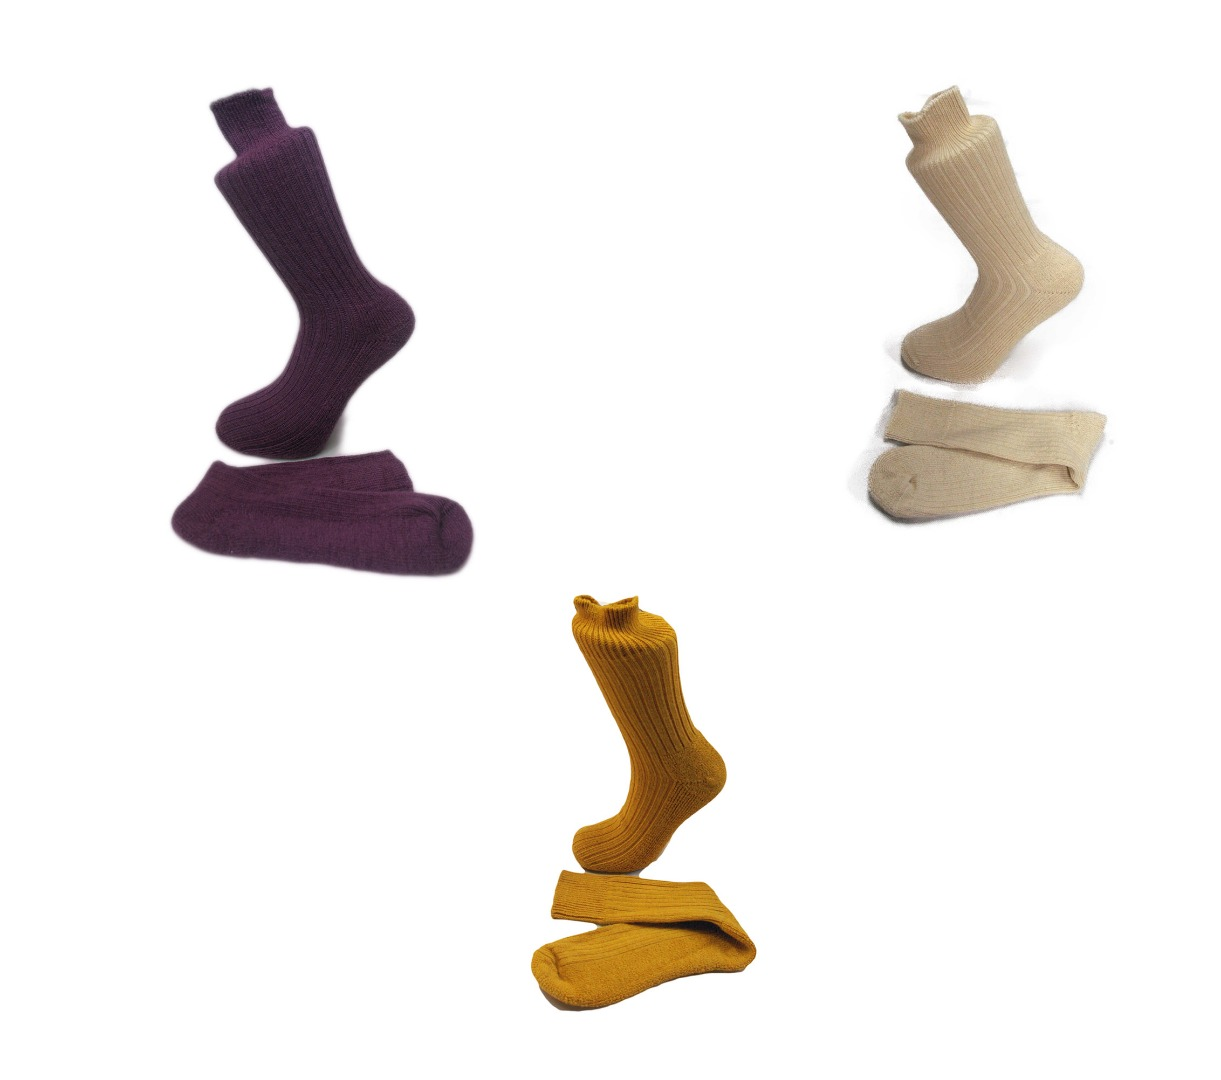 3 Pairs of Alpaca Walking Socks, Cushioned Sole, 75% Alpaca Wool. Alpaca Sock <br><br>Gift Idea F